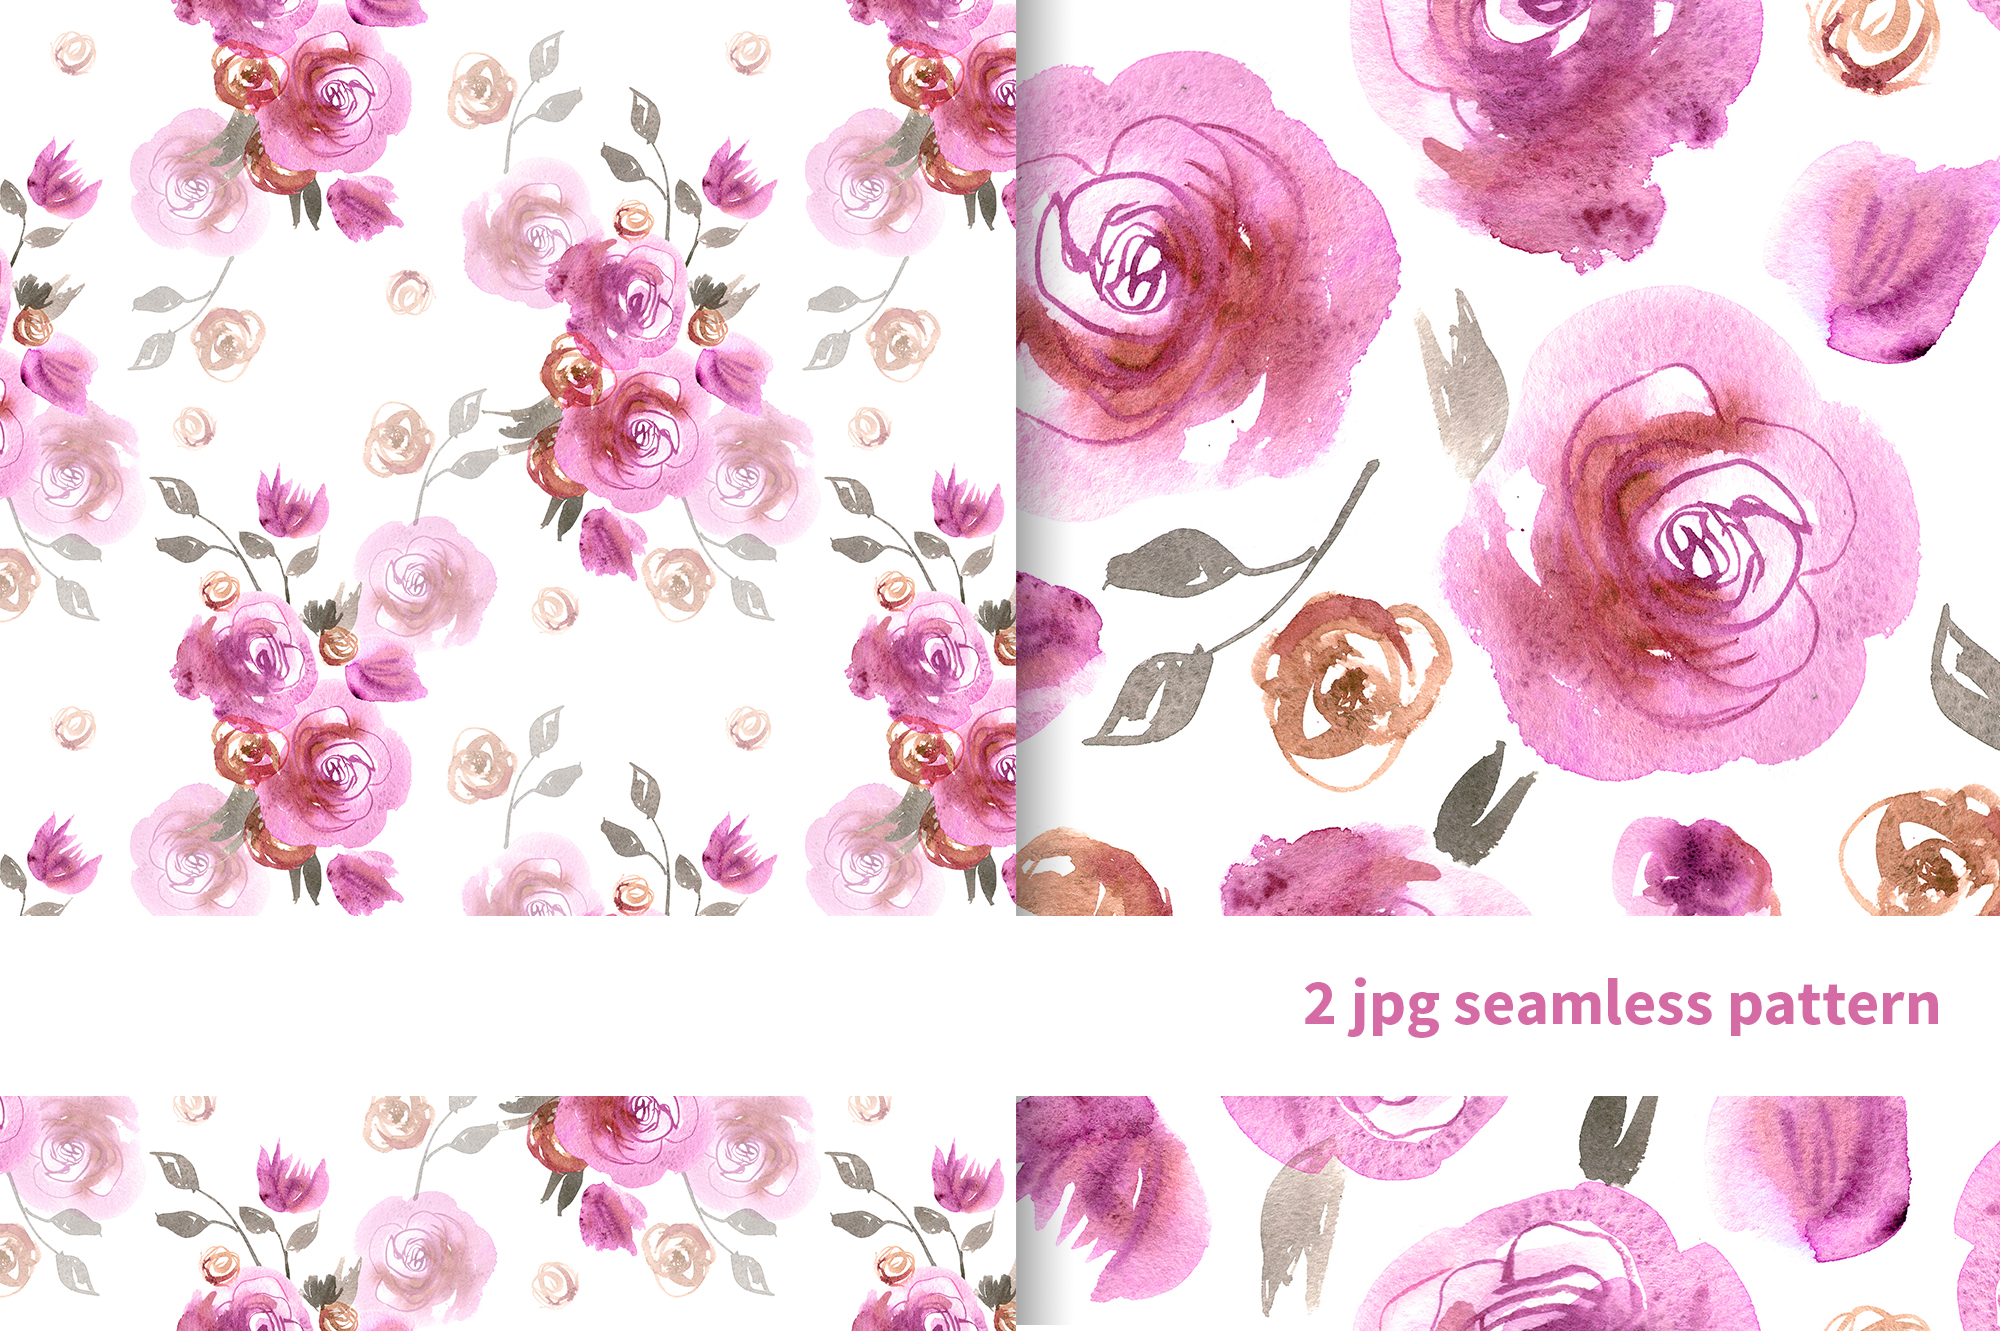 Watercolor pink roses example image 6